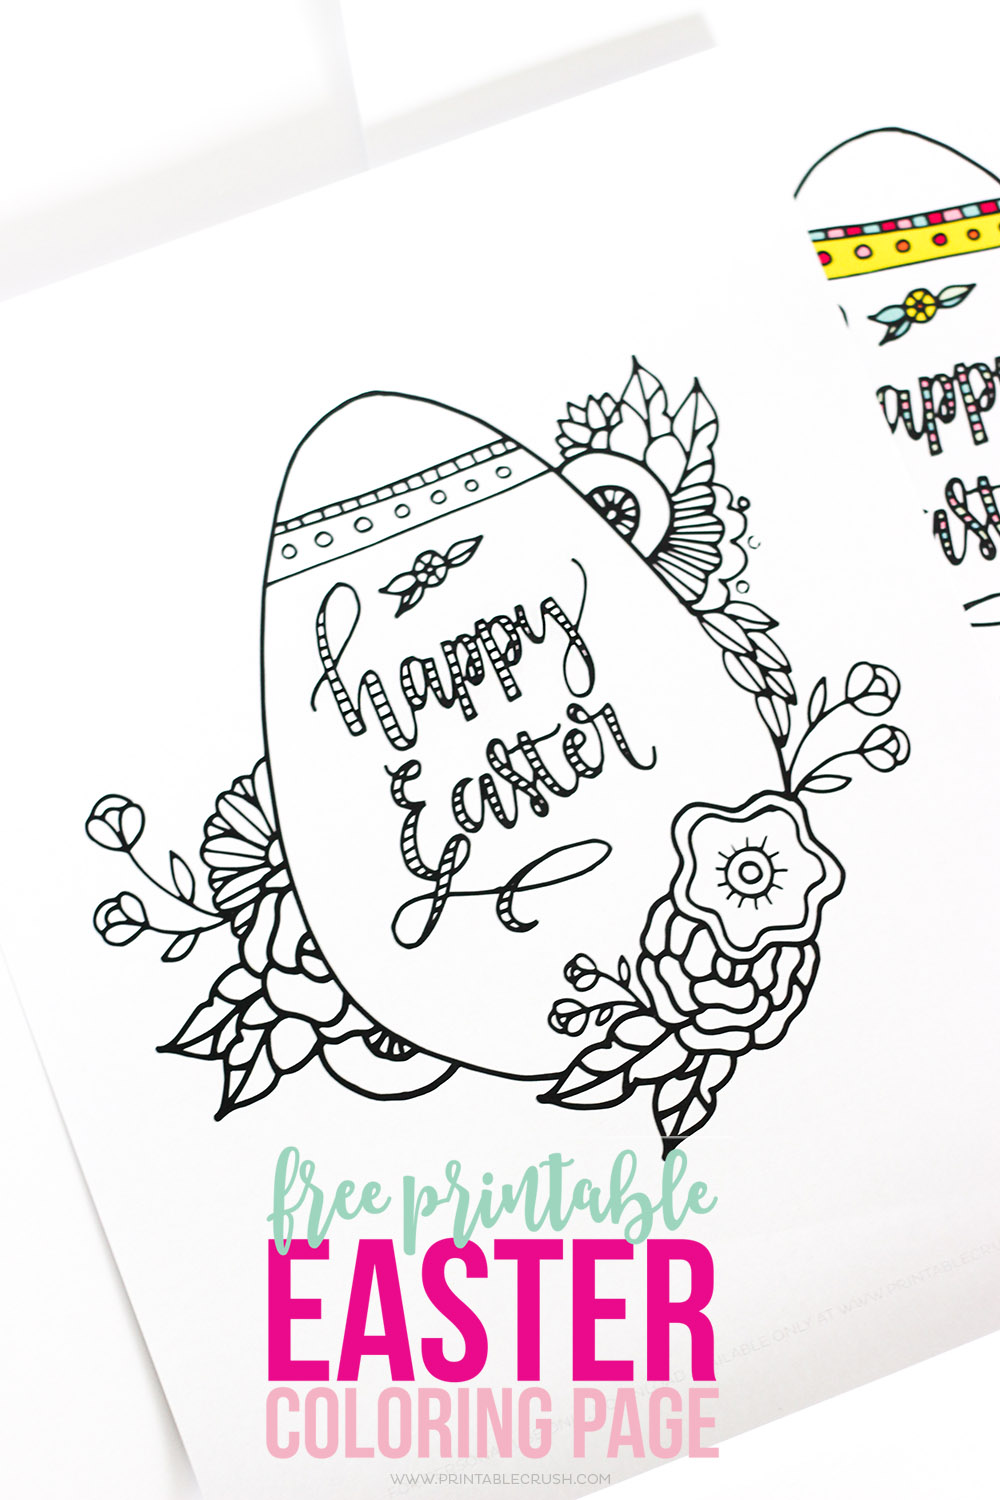 Easter coloring page against white background